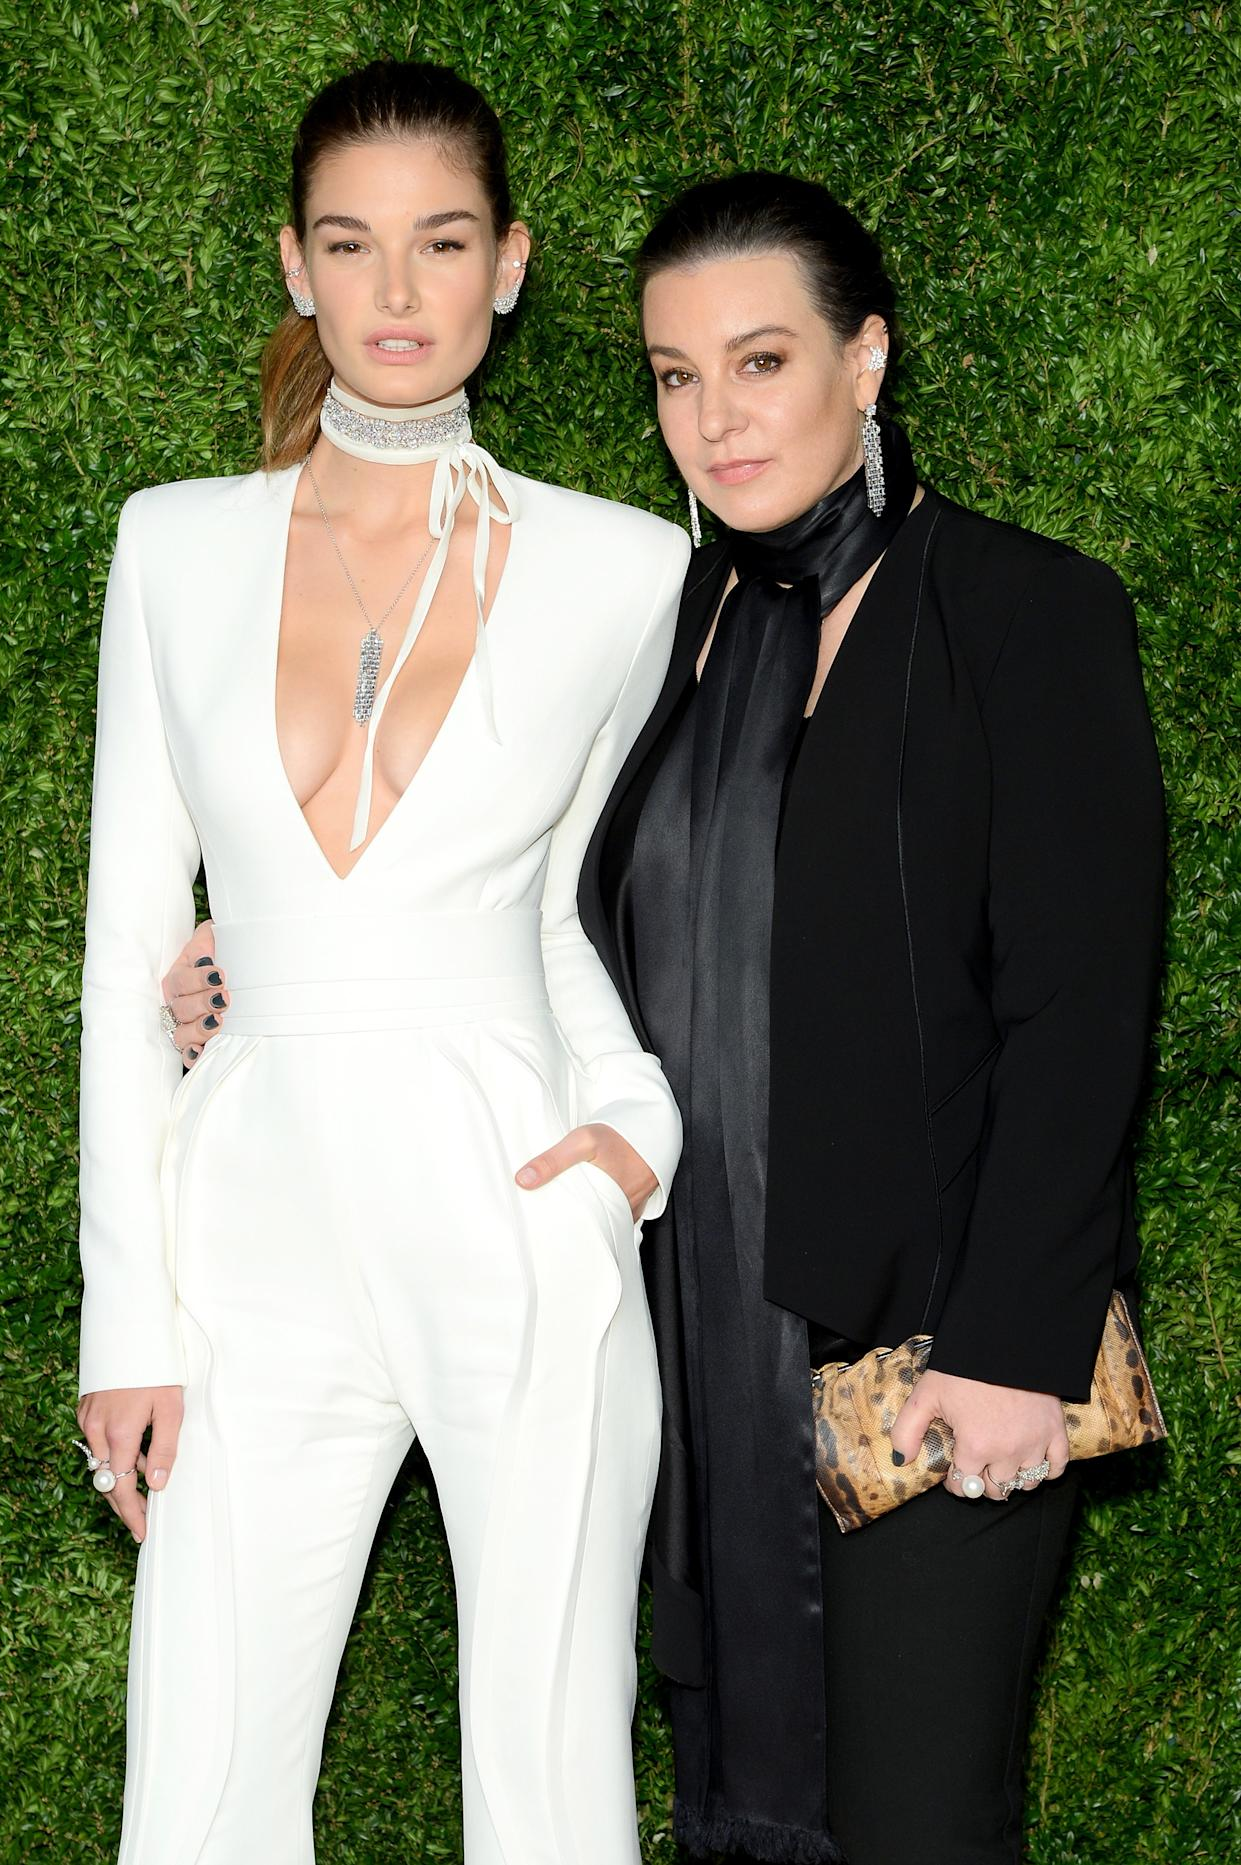 NEW YORK, NY - NOVEMBER 02:  Model Ophelie Guillermand (L) and jewelry designer Dana Lorenz attend the 12th annual CFDA/Vogue Fashion Fund Awards at Spring Studios on November 2, 2015 in New York City.  (Photo by Andrew Toth/Getty Images)